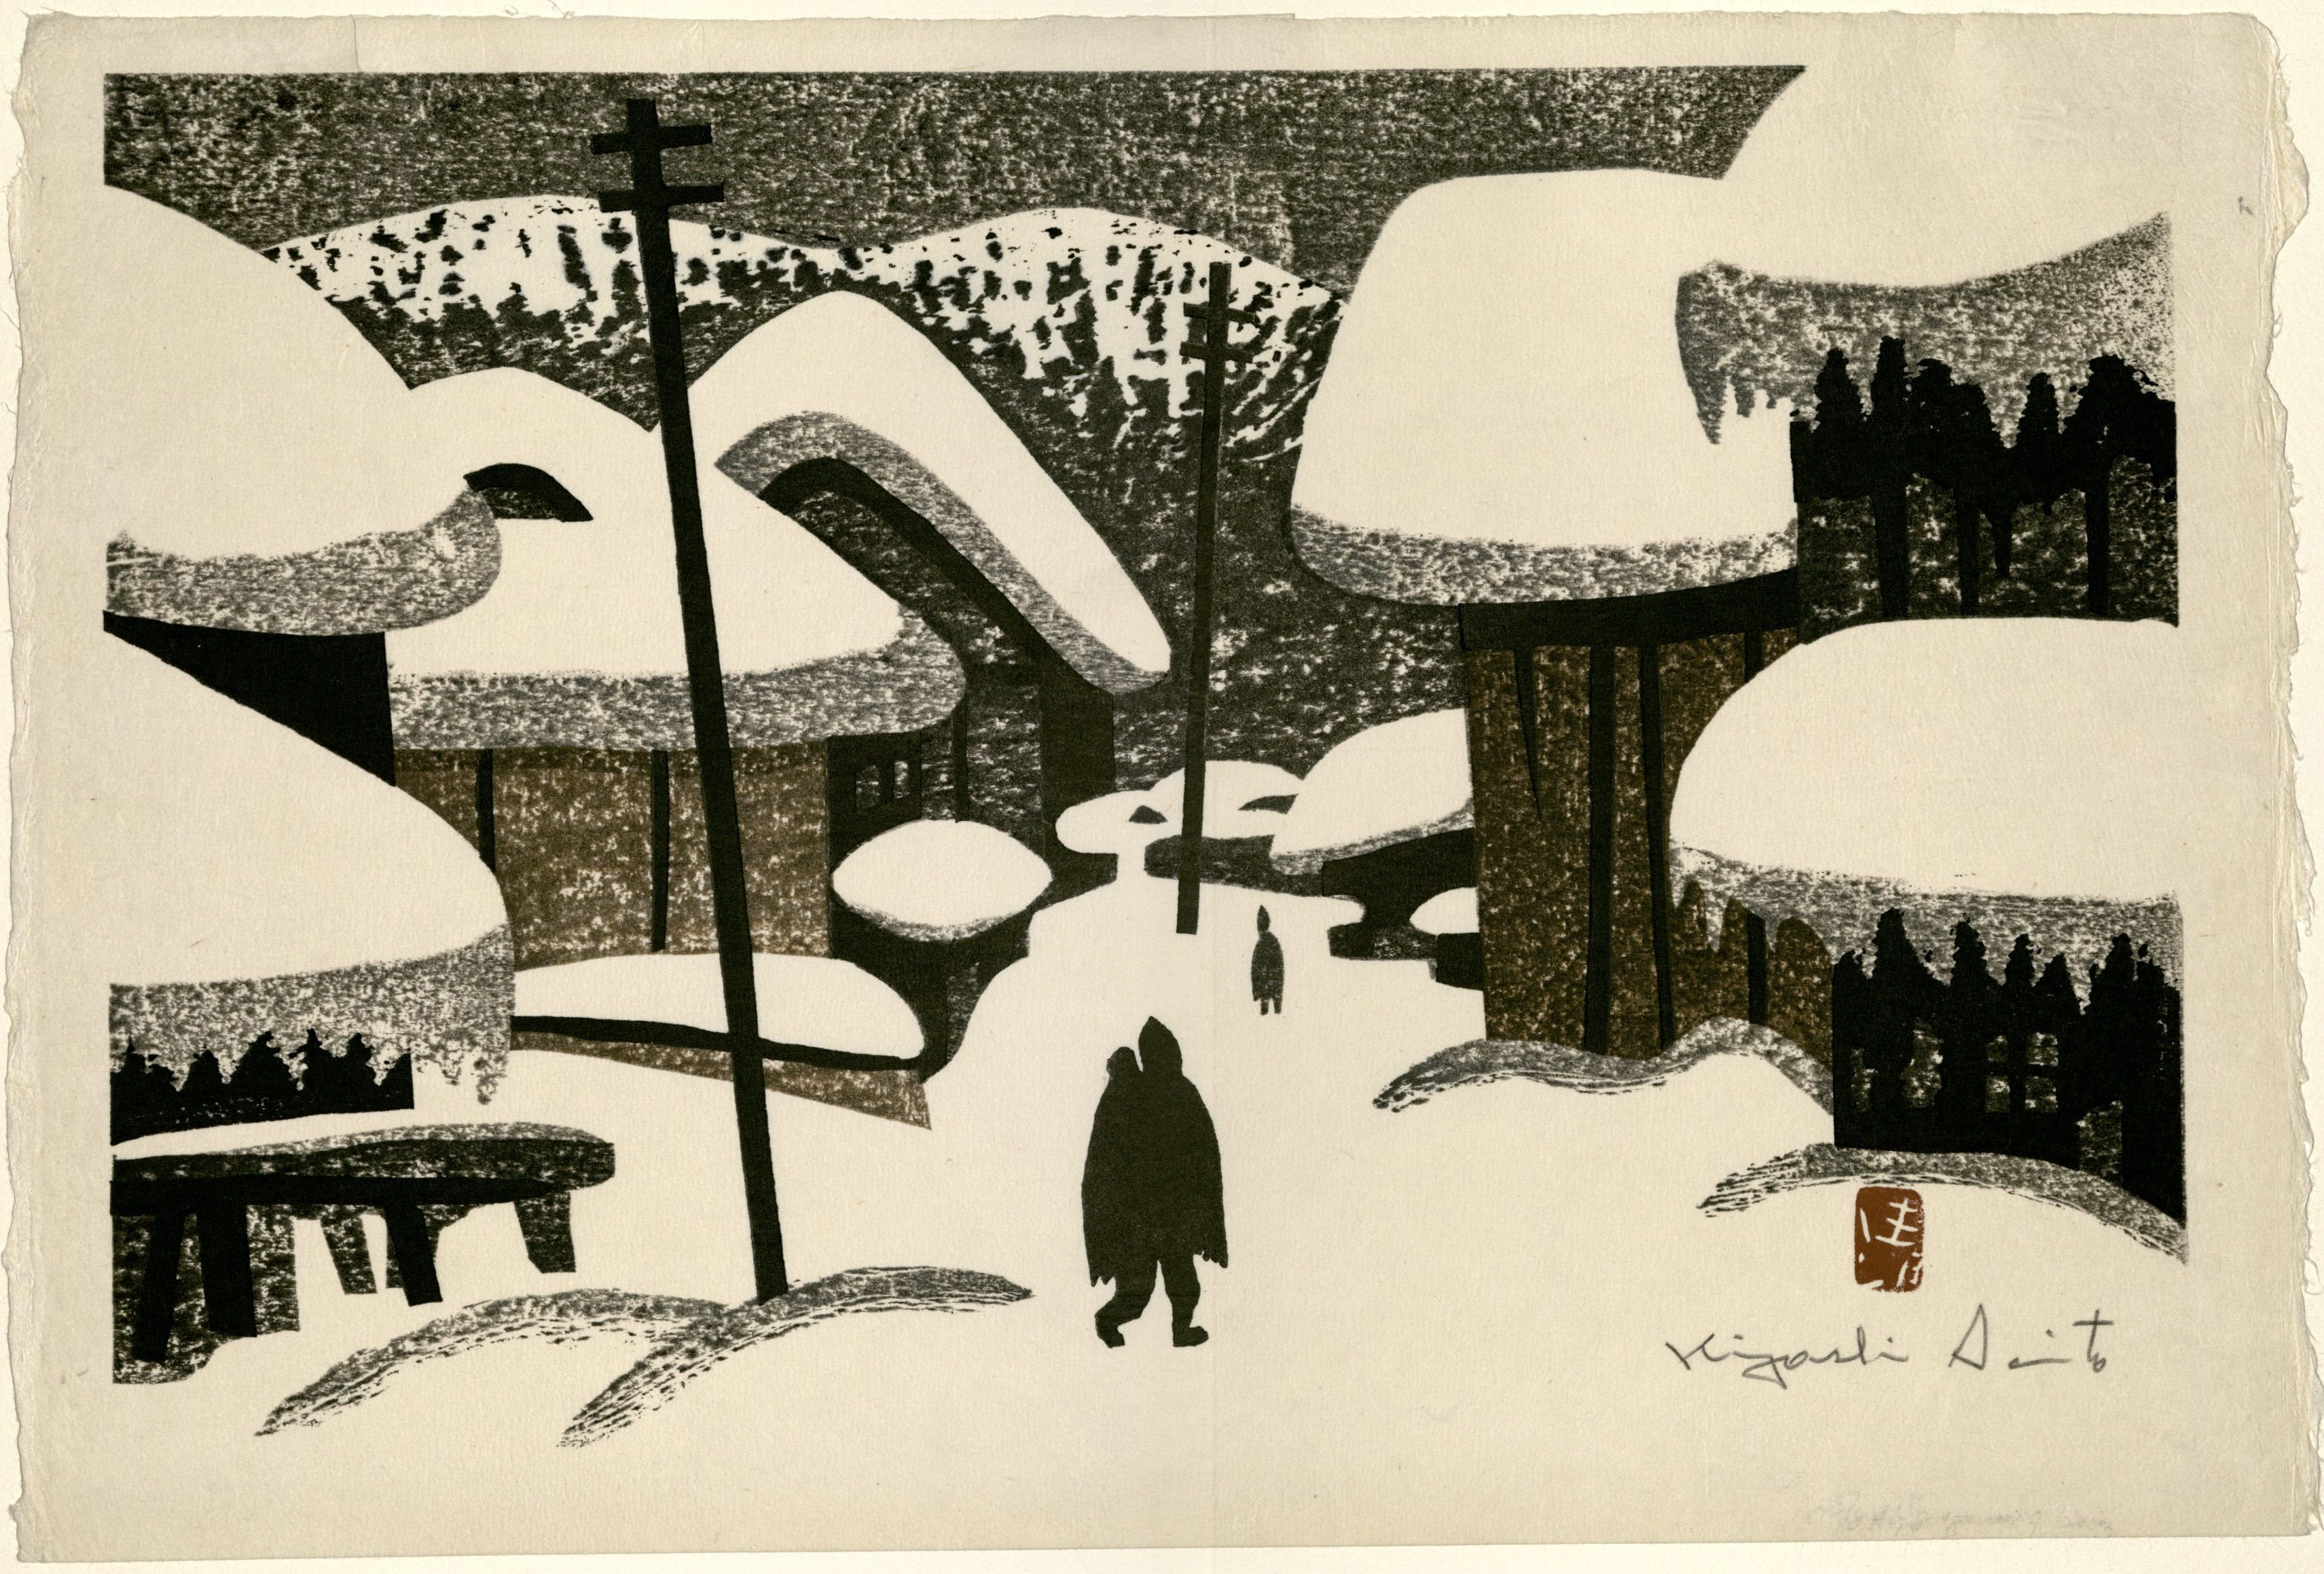 Modern Japanese Woodblock Prints | John J  Burns Library's Blog